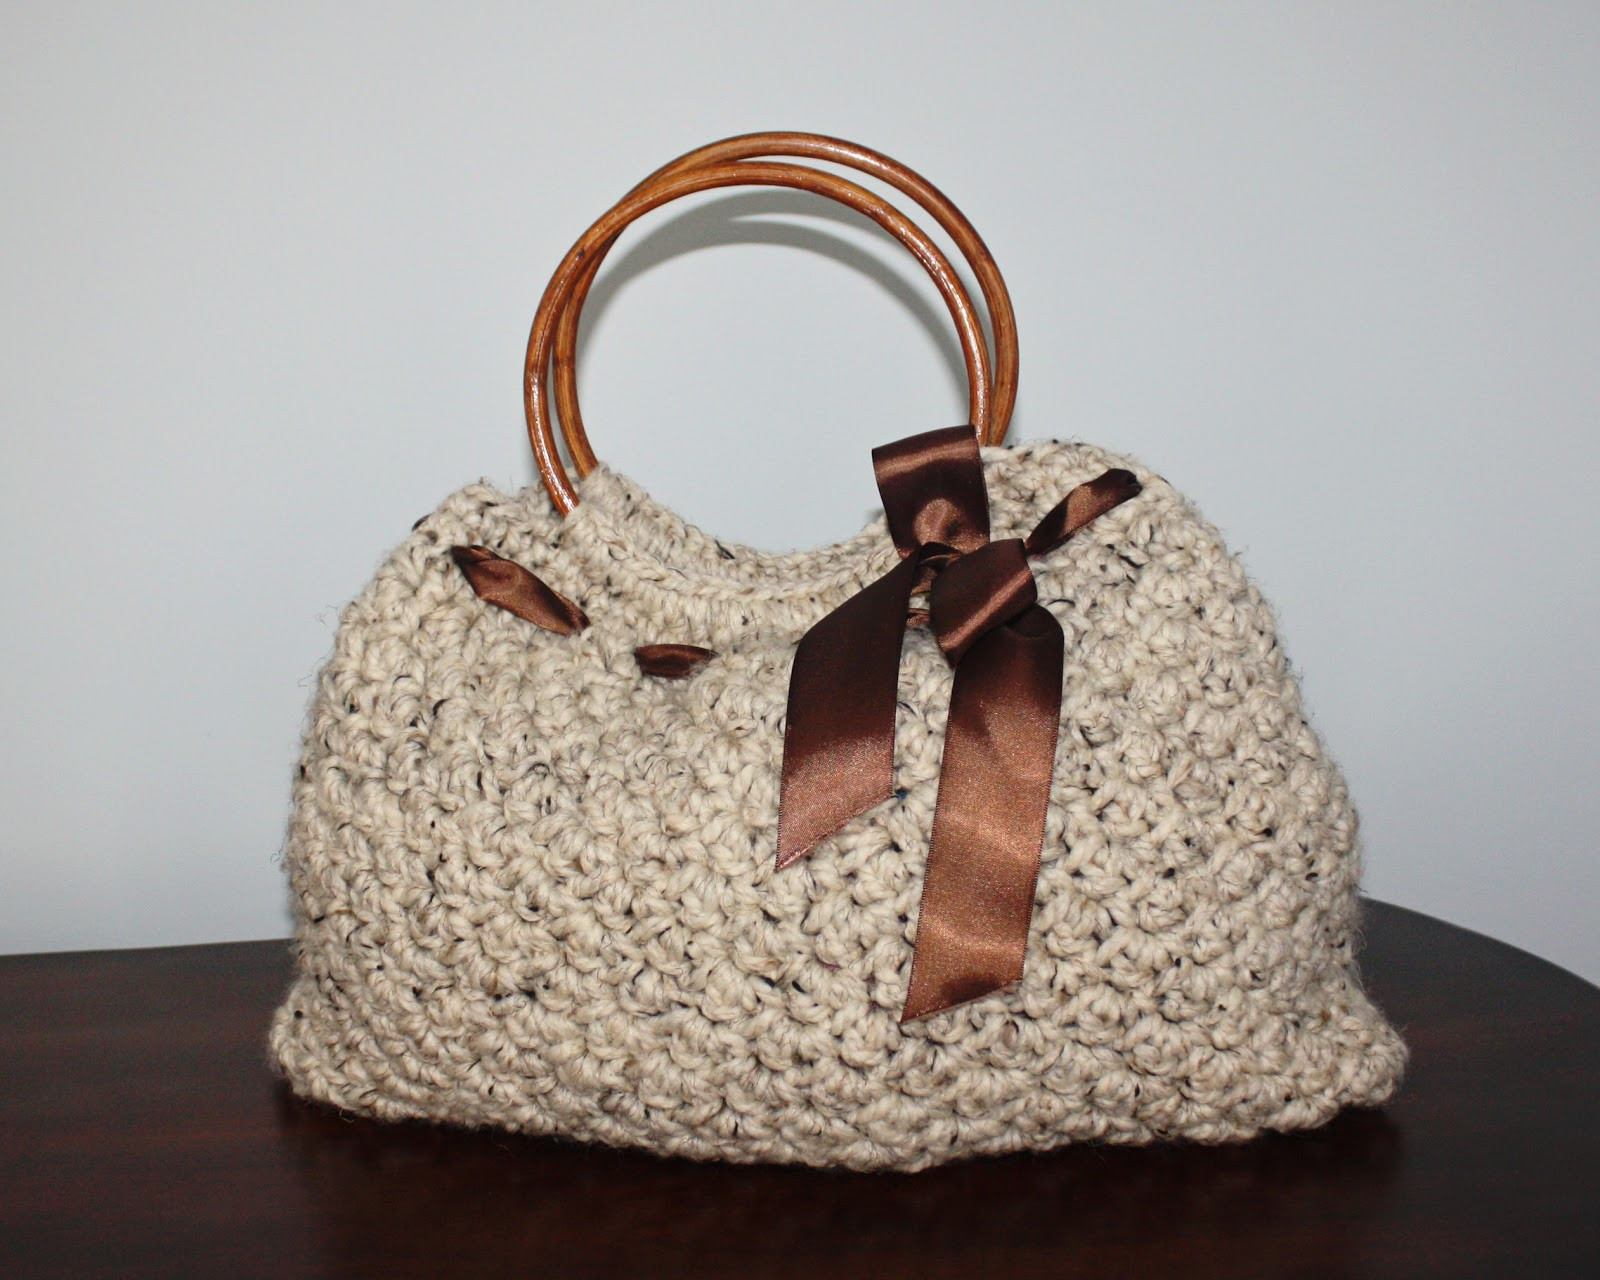 Free Crochet Bag Patterns Lovely Pretty Darn Adorable Crochet Free Patterns Of Awesome 45 Ideas Free Crochet Bag Patterns